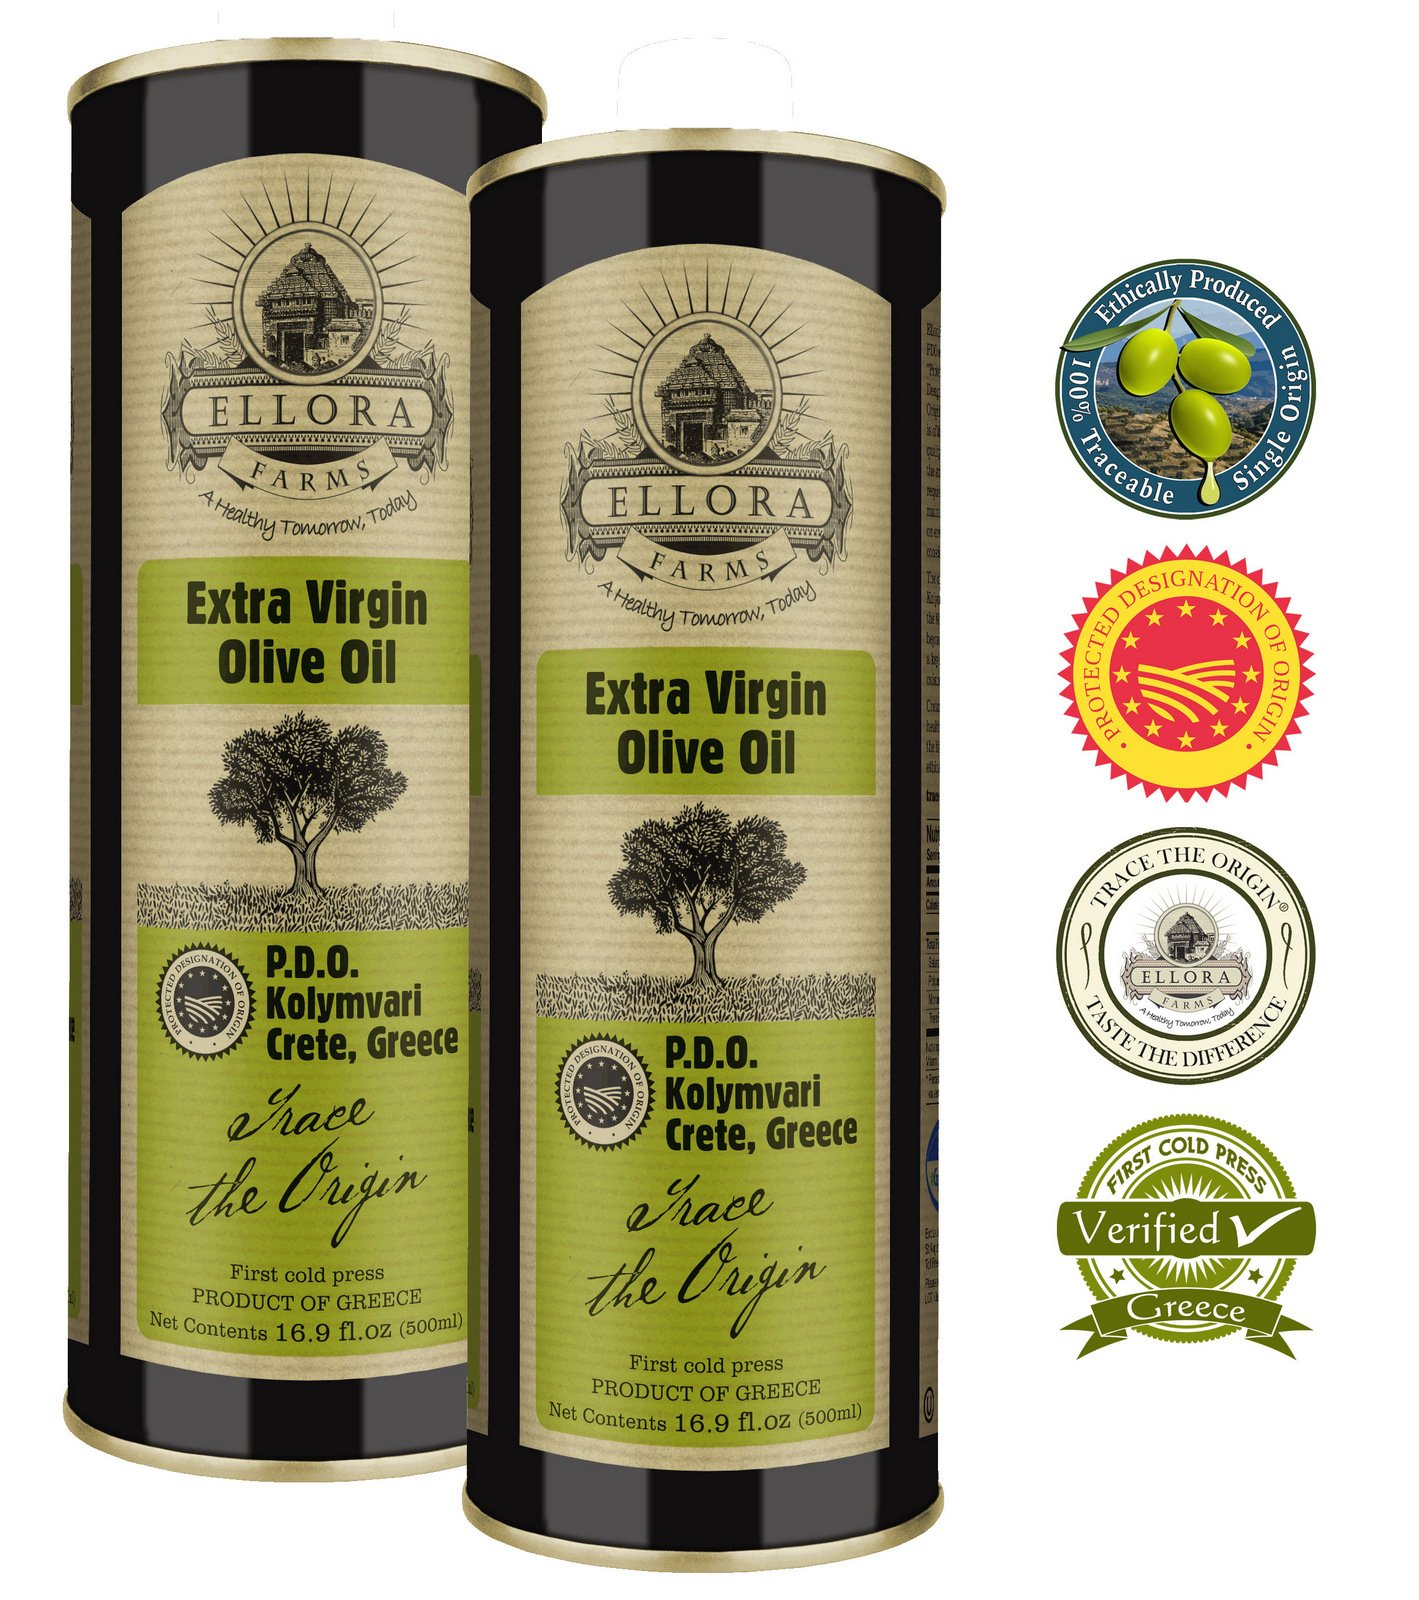 Ellora Farms | Certified Single Estate PDO Extra Virgin Olive Oil | Ethically produced Traceable EVOO | First Cold Press | Harvested in Ancient Crete, Greece | 16.9 oz Tin | Pack of 2